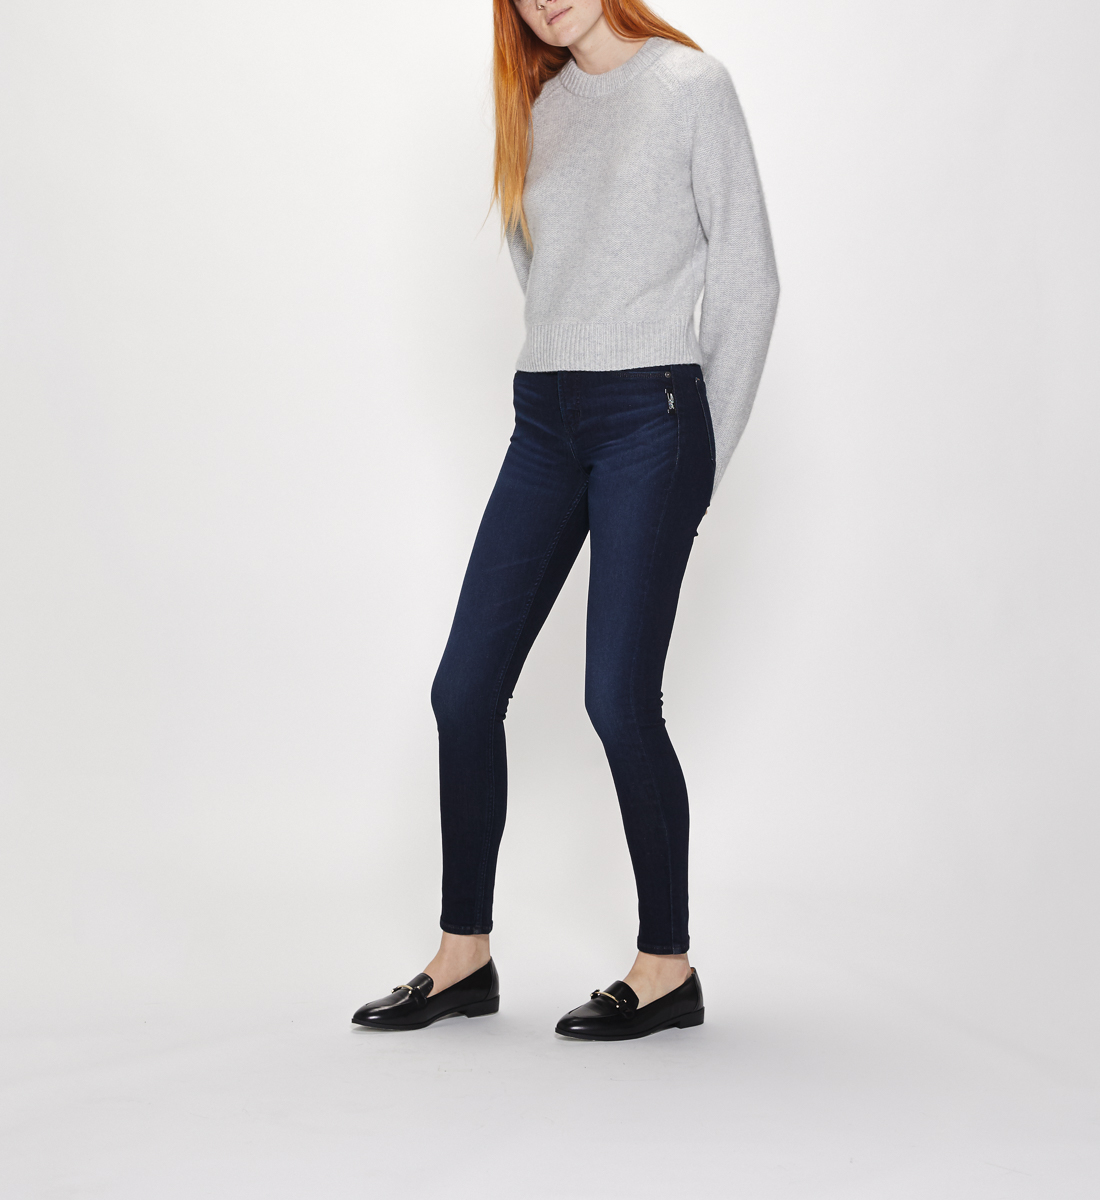 Mazy High Rise Skinny Leg Jeans Final Sale Alt Image 5